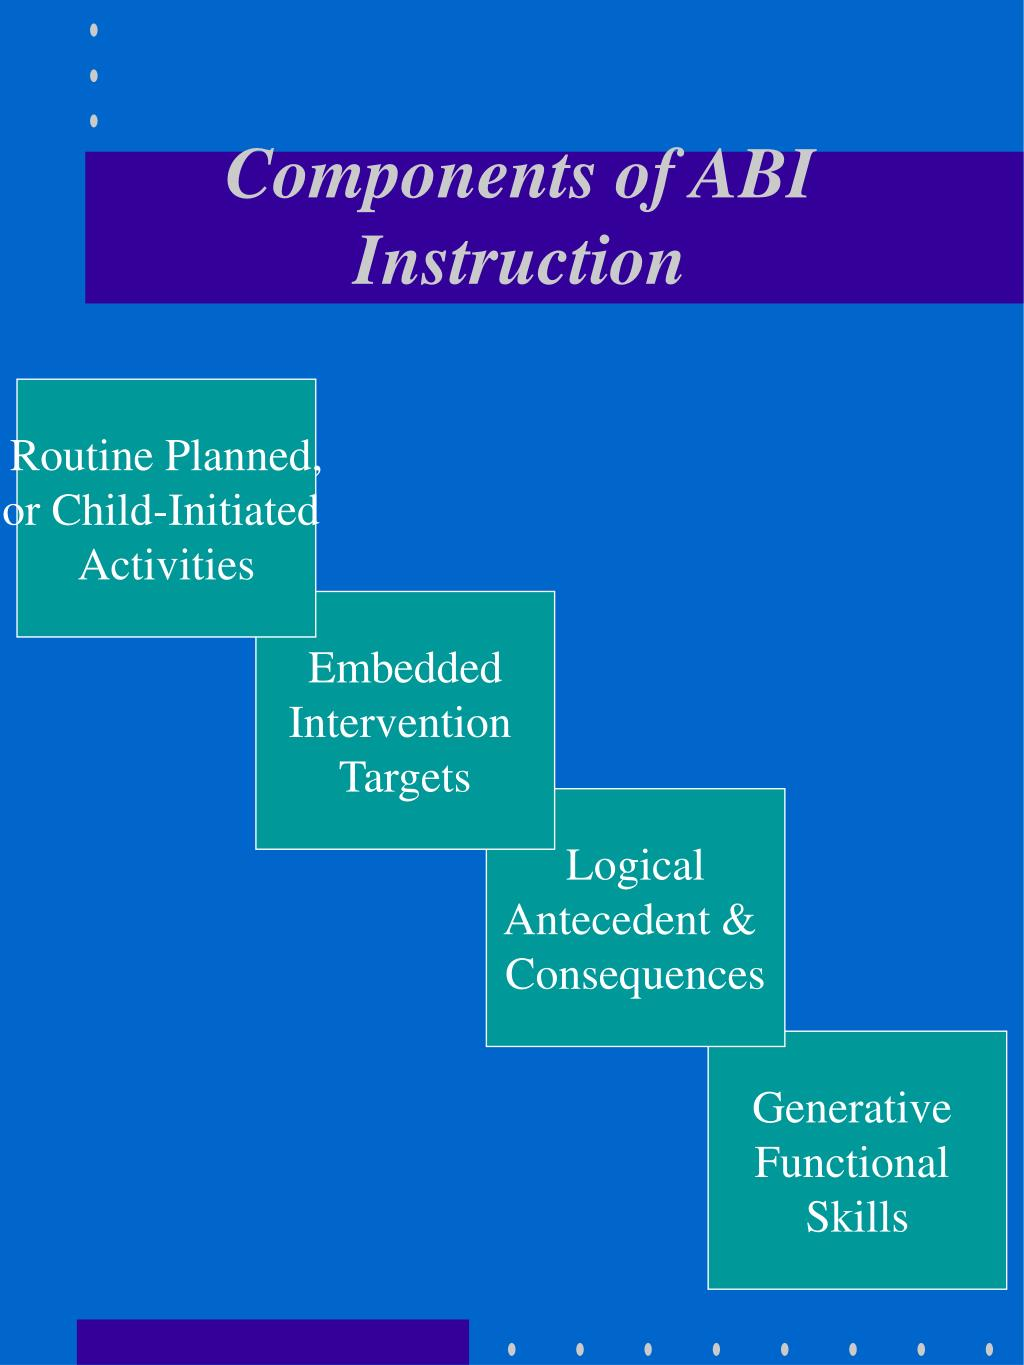 Components of ABI Instruction